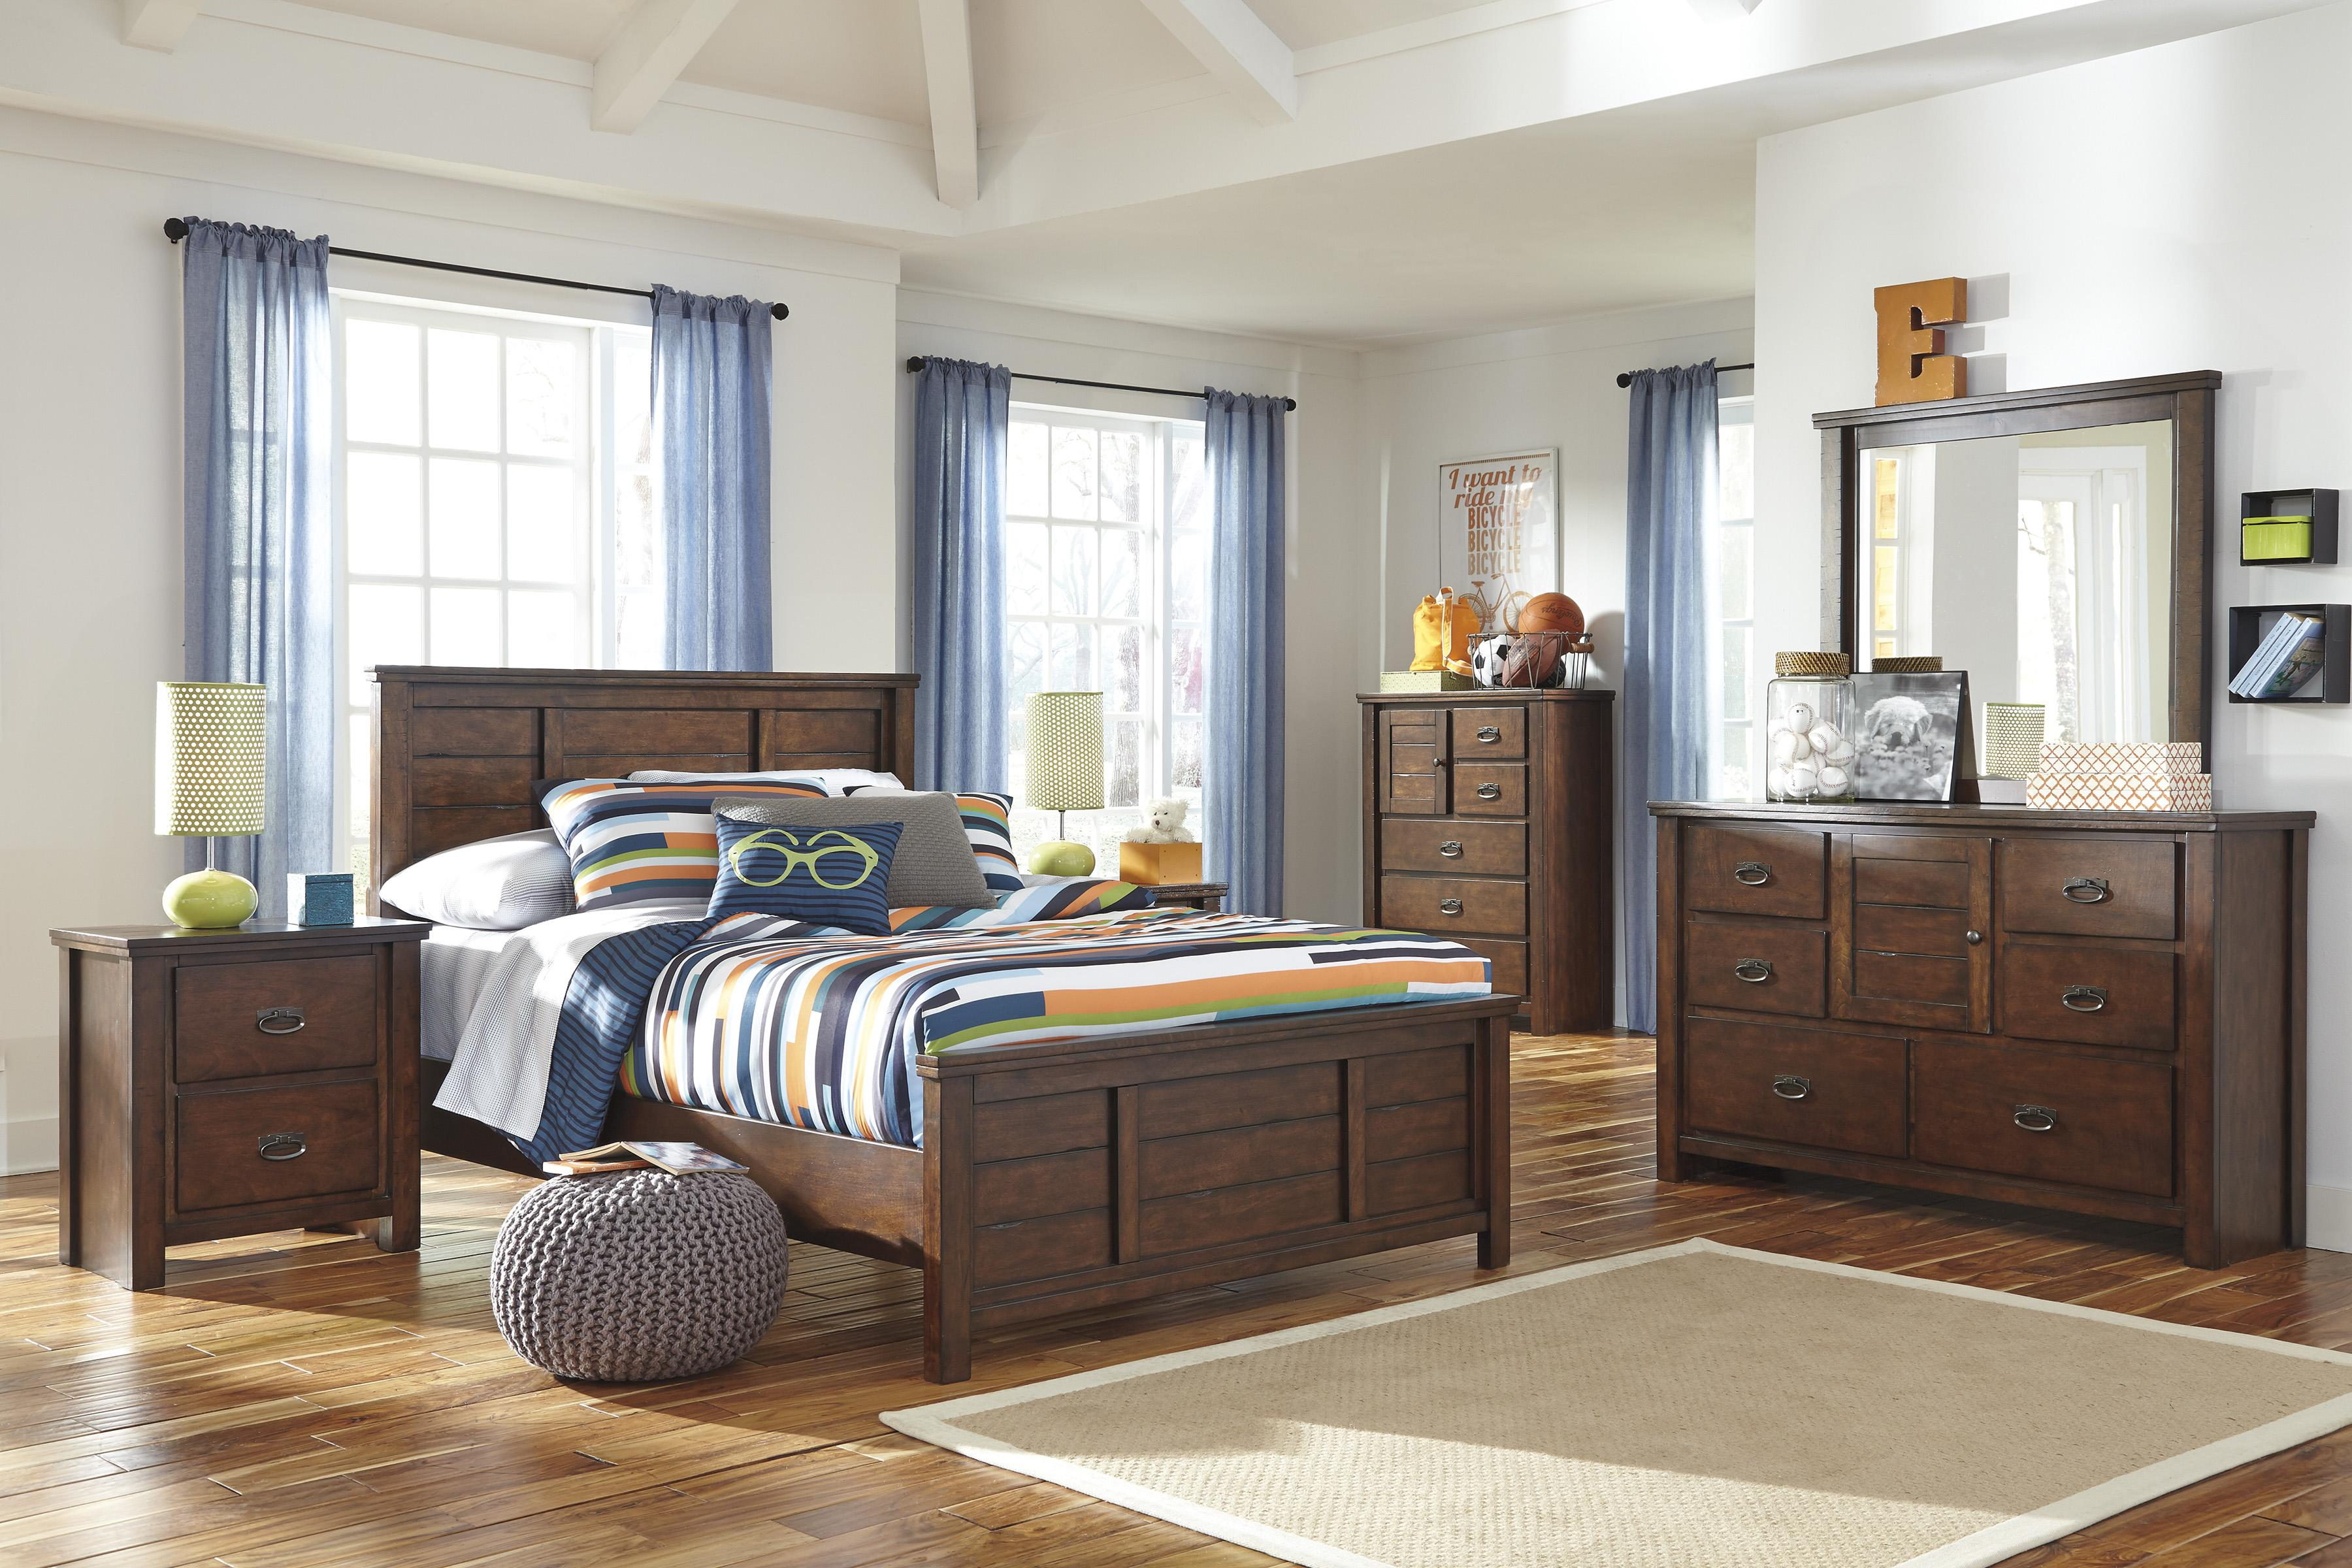 Signature Design by Ashley Ladiville Full Bedroom Group - Item Number: B567 F Bedroom Group 1